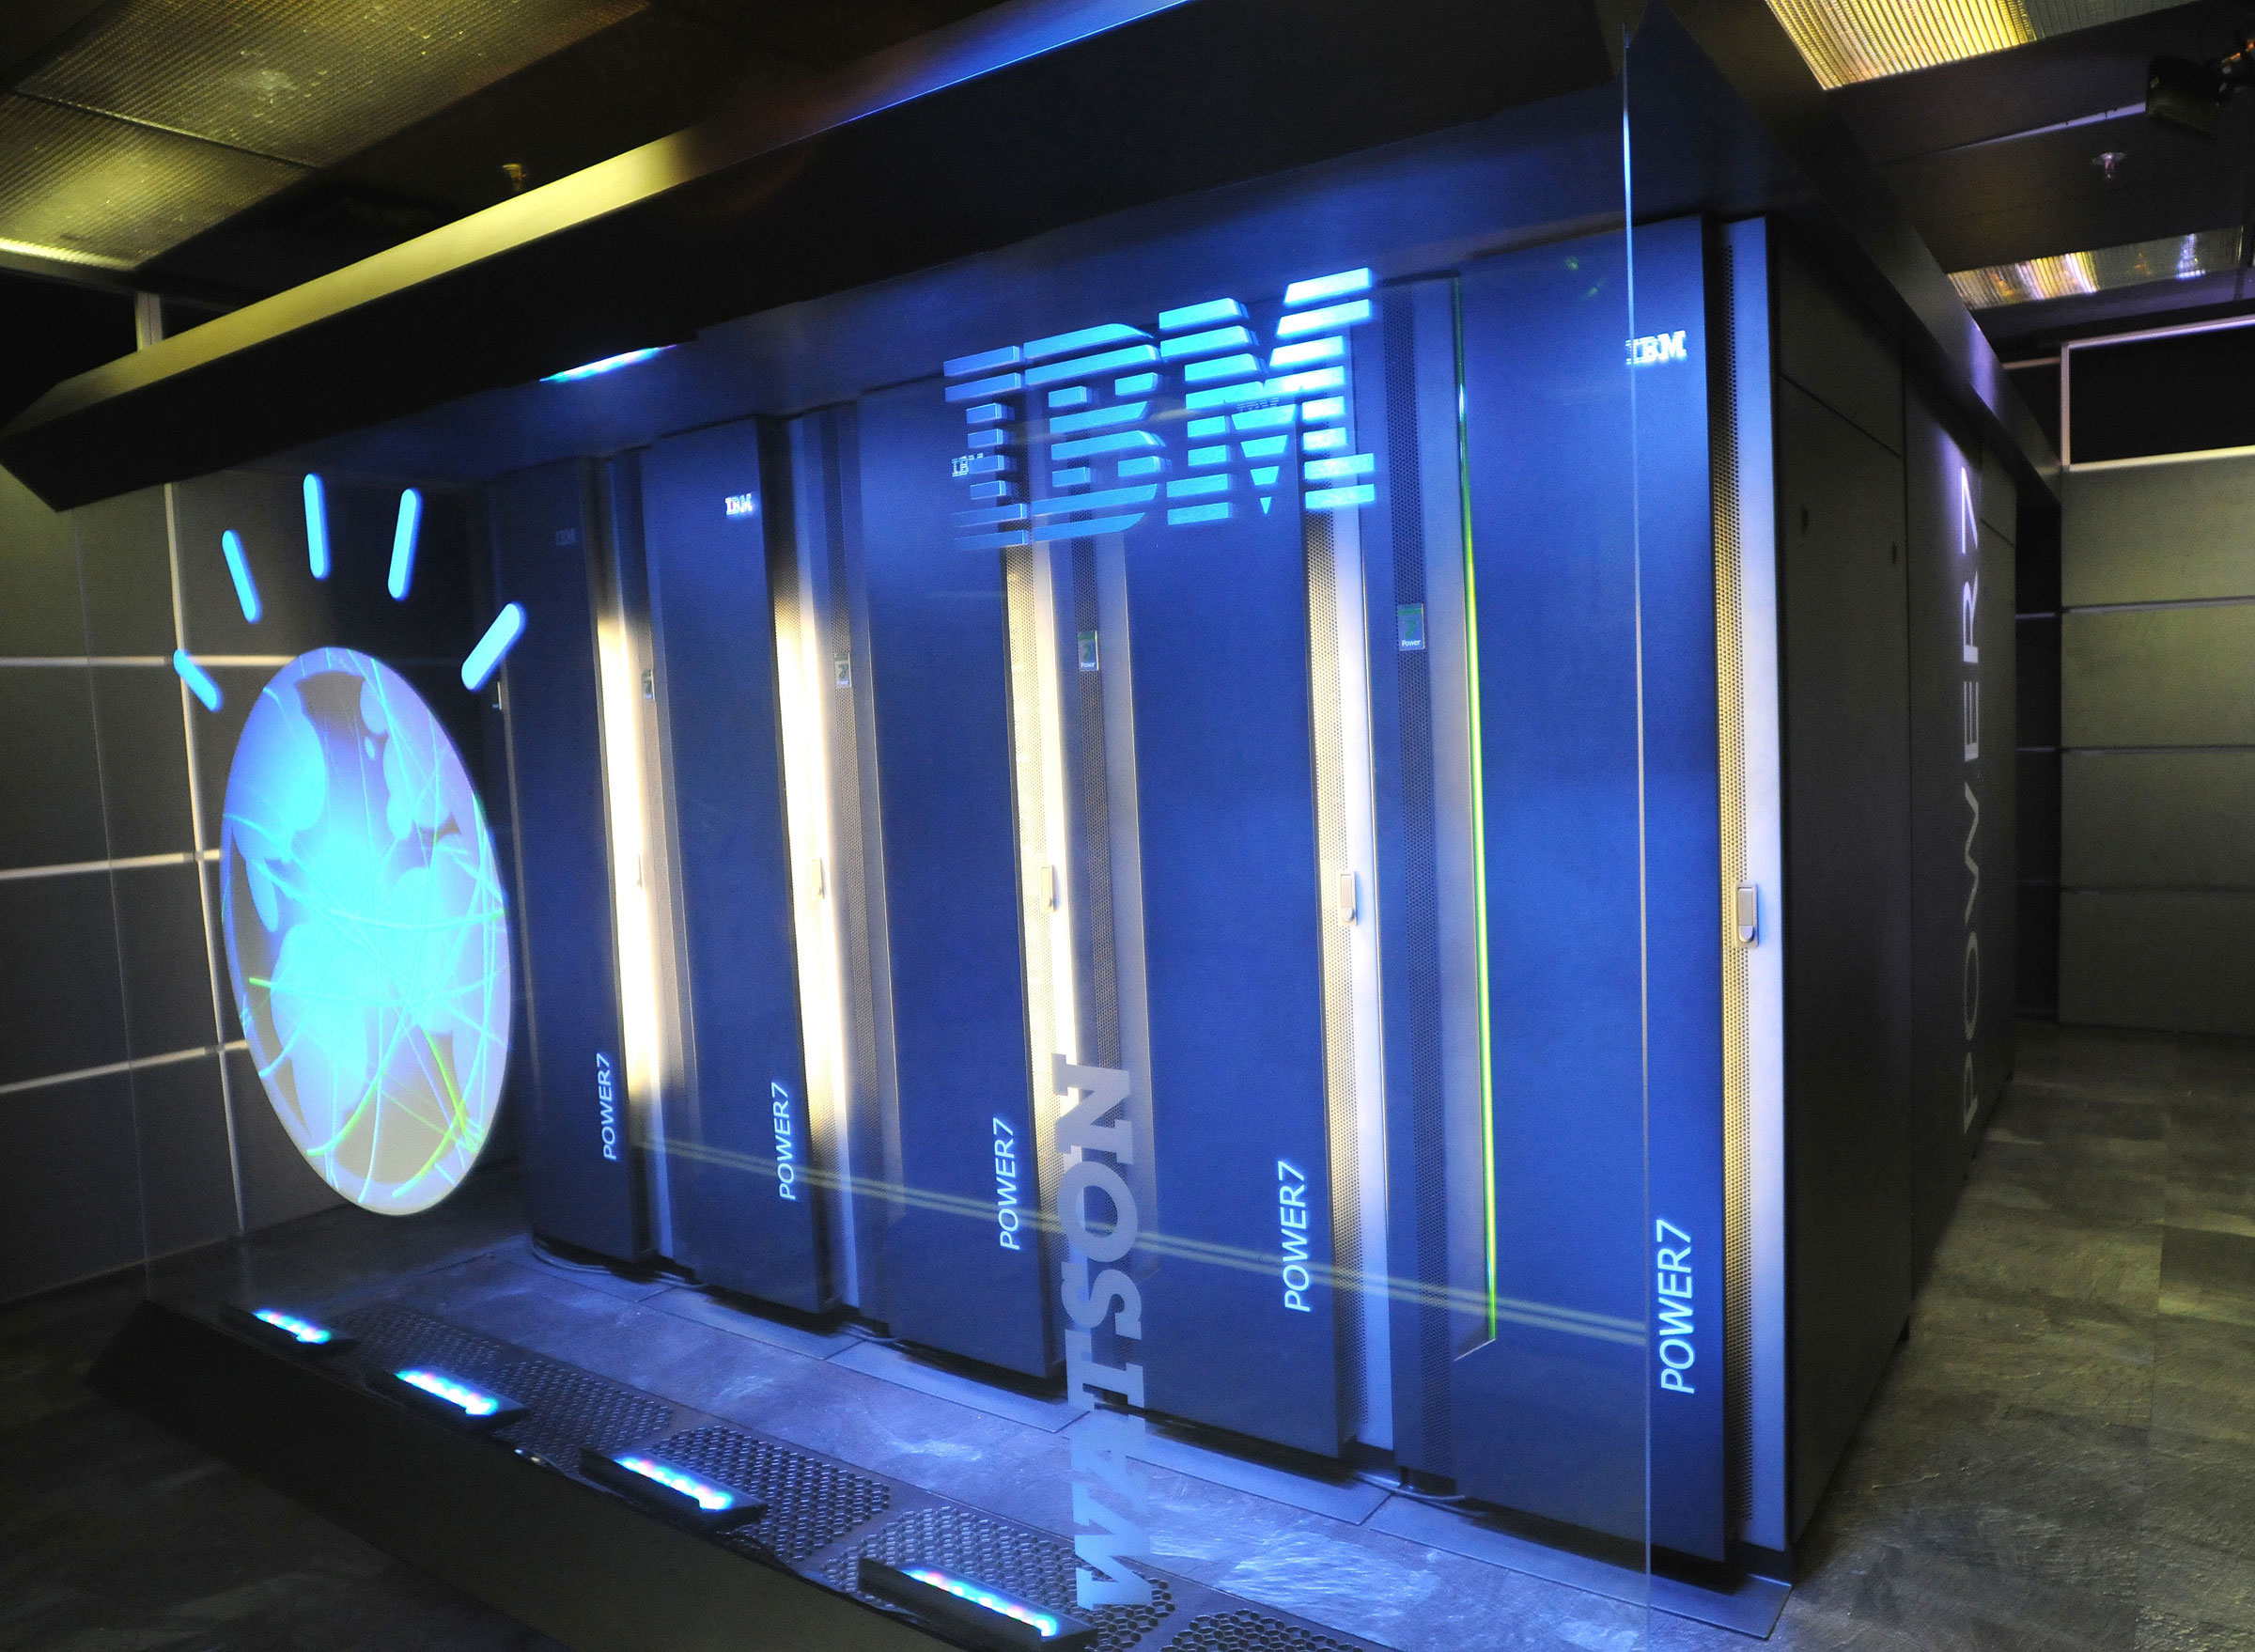 IBM Servers IBM Looking to Acquire Cloud Services Company SoftLayer